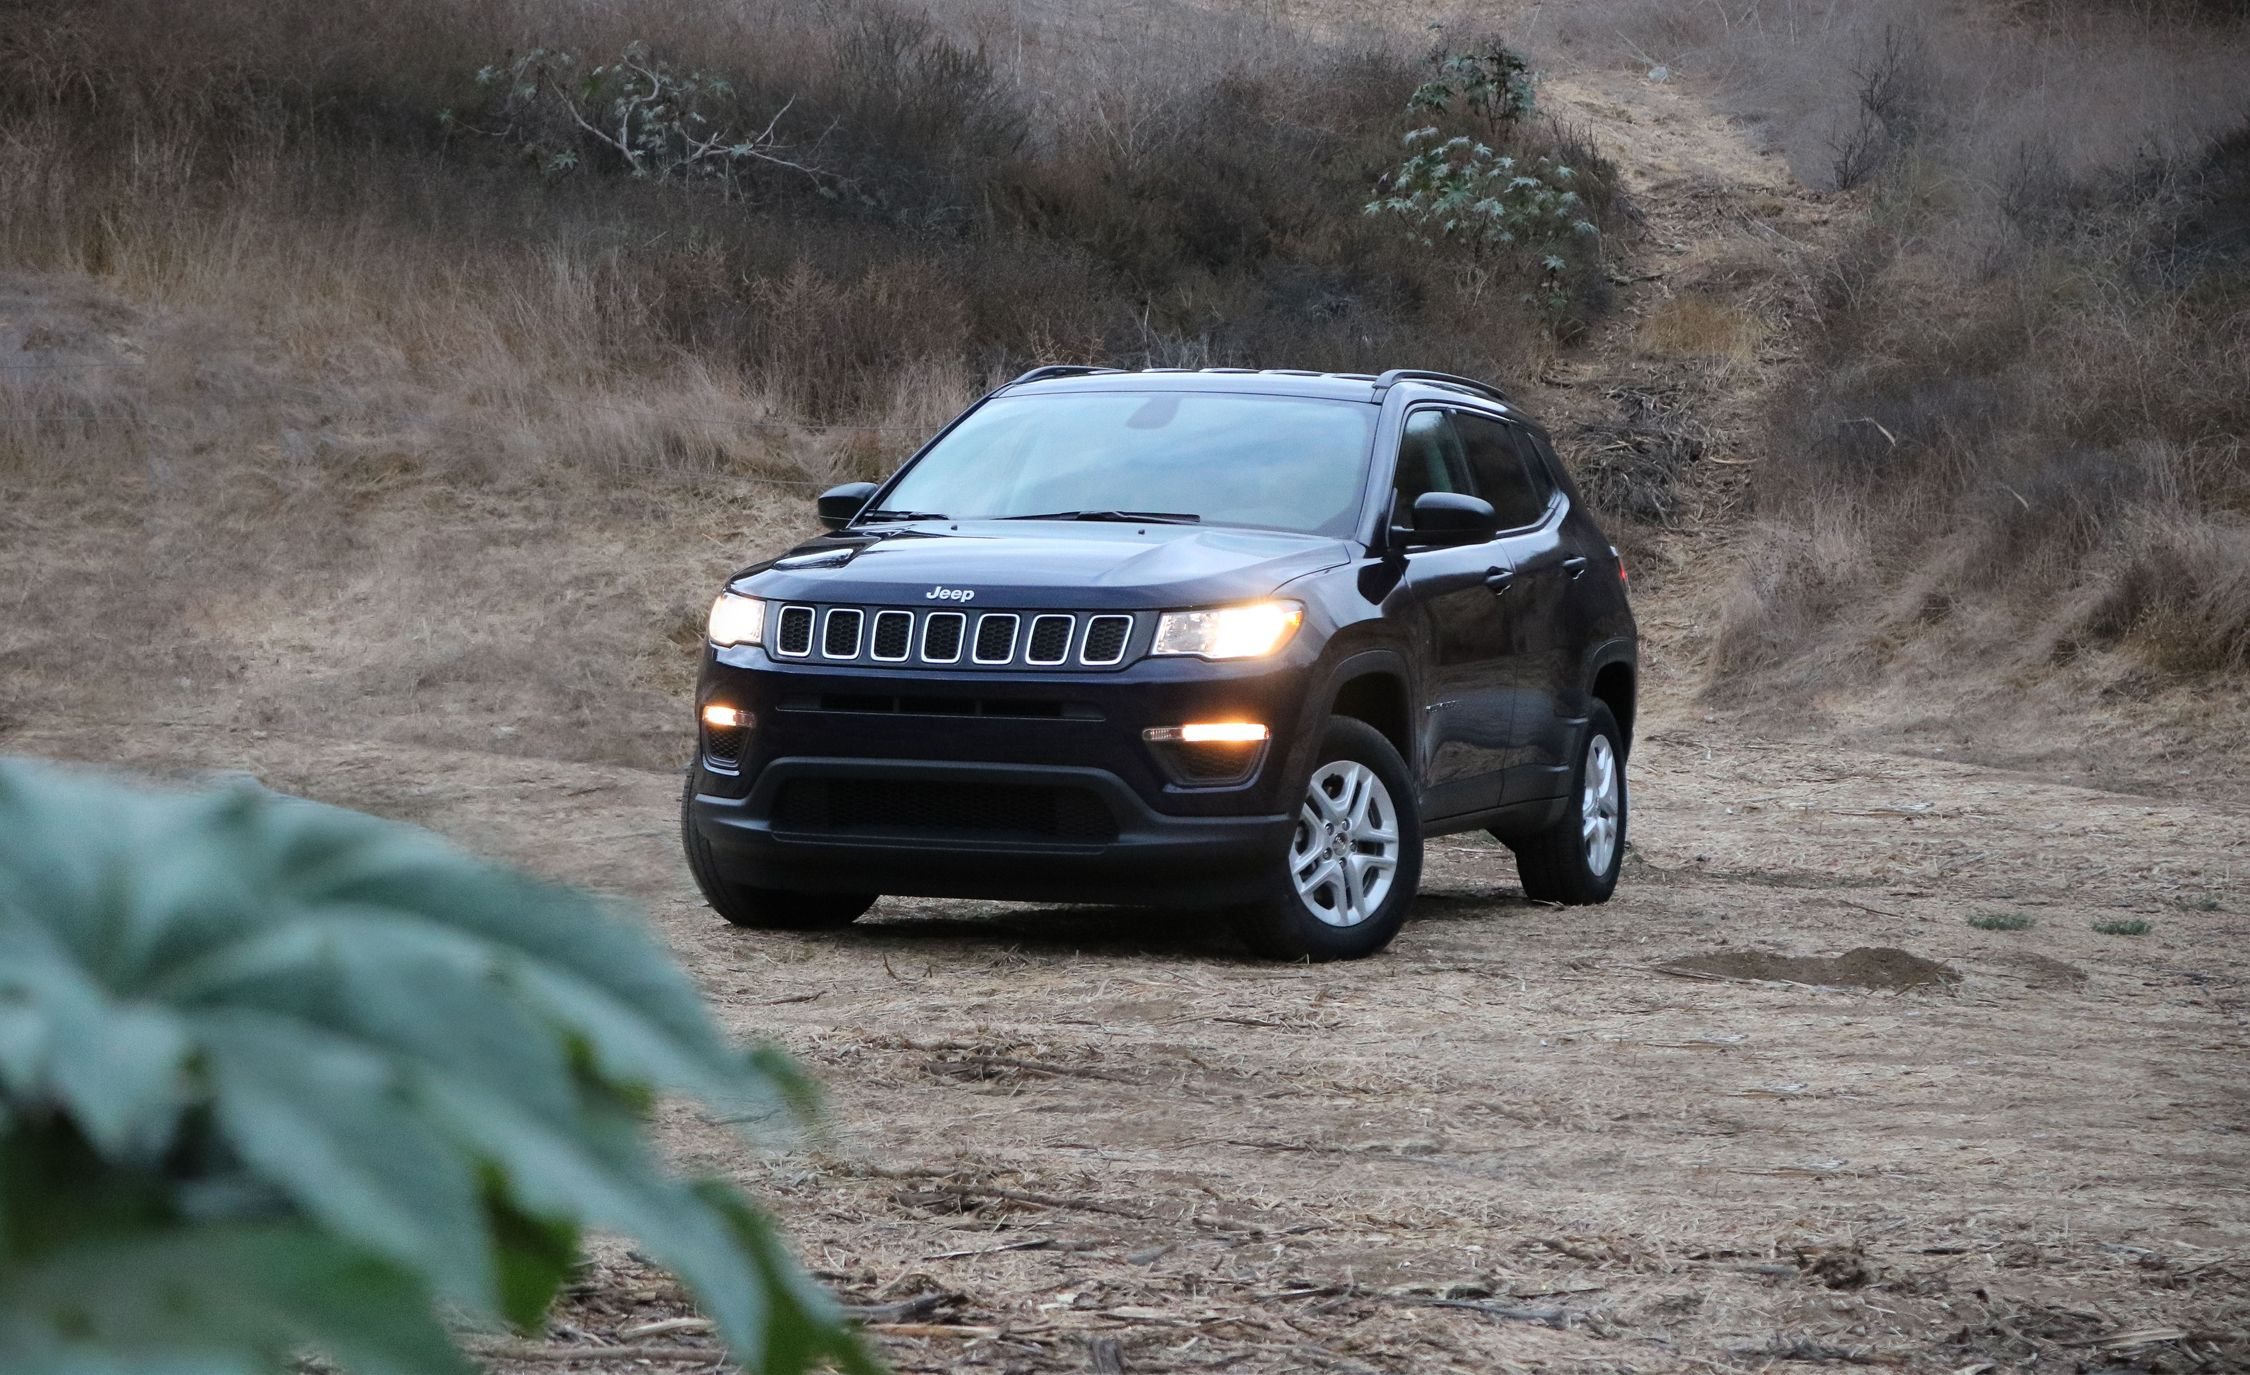 2018 Jeep Comp 4x4 Automatic Tested Doe Review Car And Driver